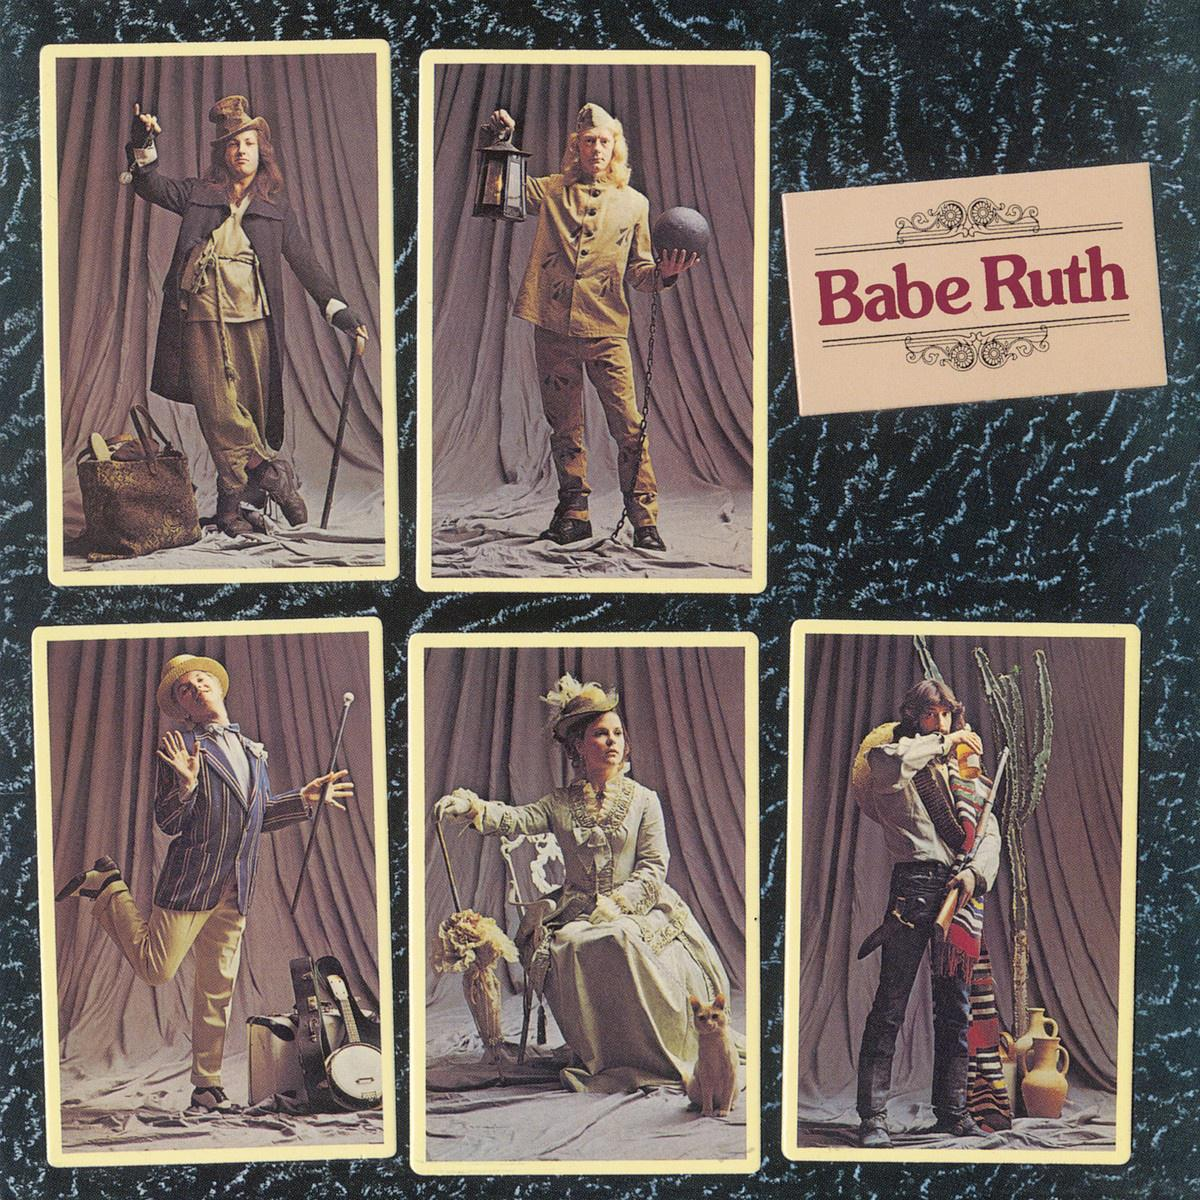 Babe Ruth by Nat Fein - The Fein Story Behind the Pictures Babe ruth images pictures